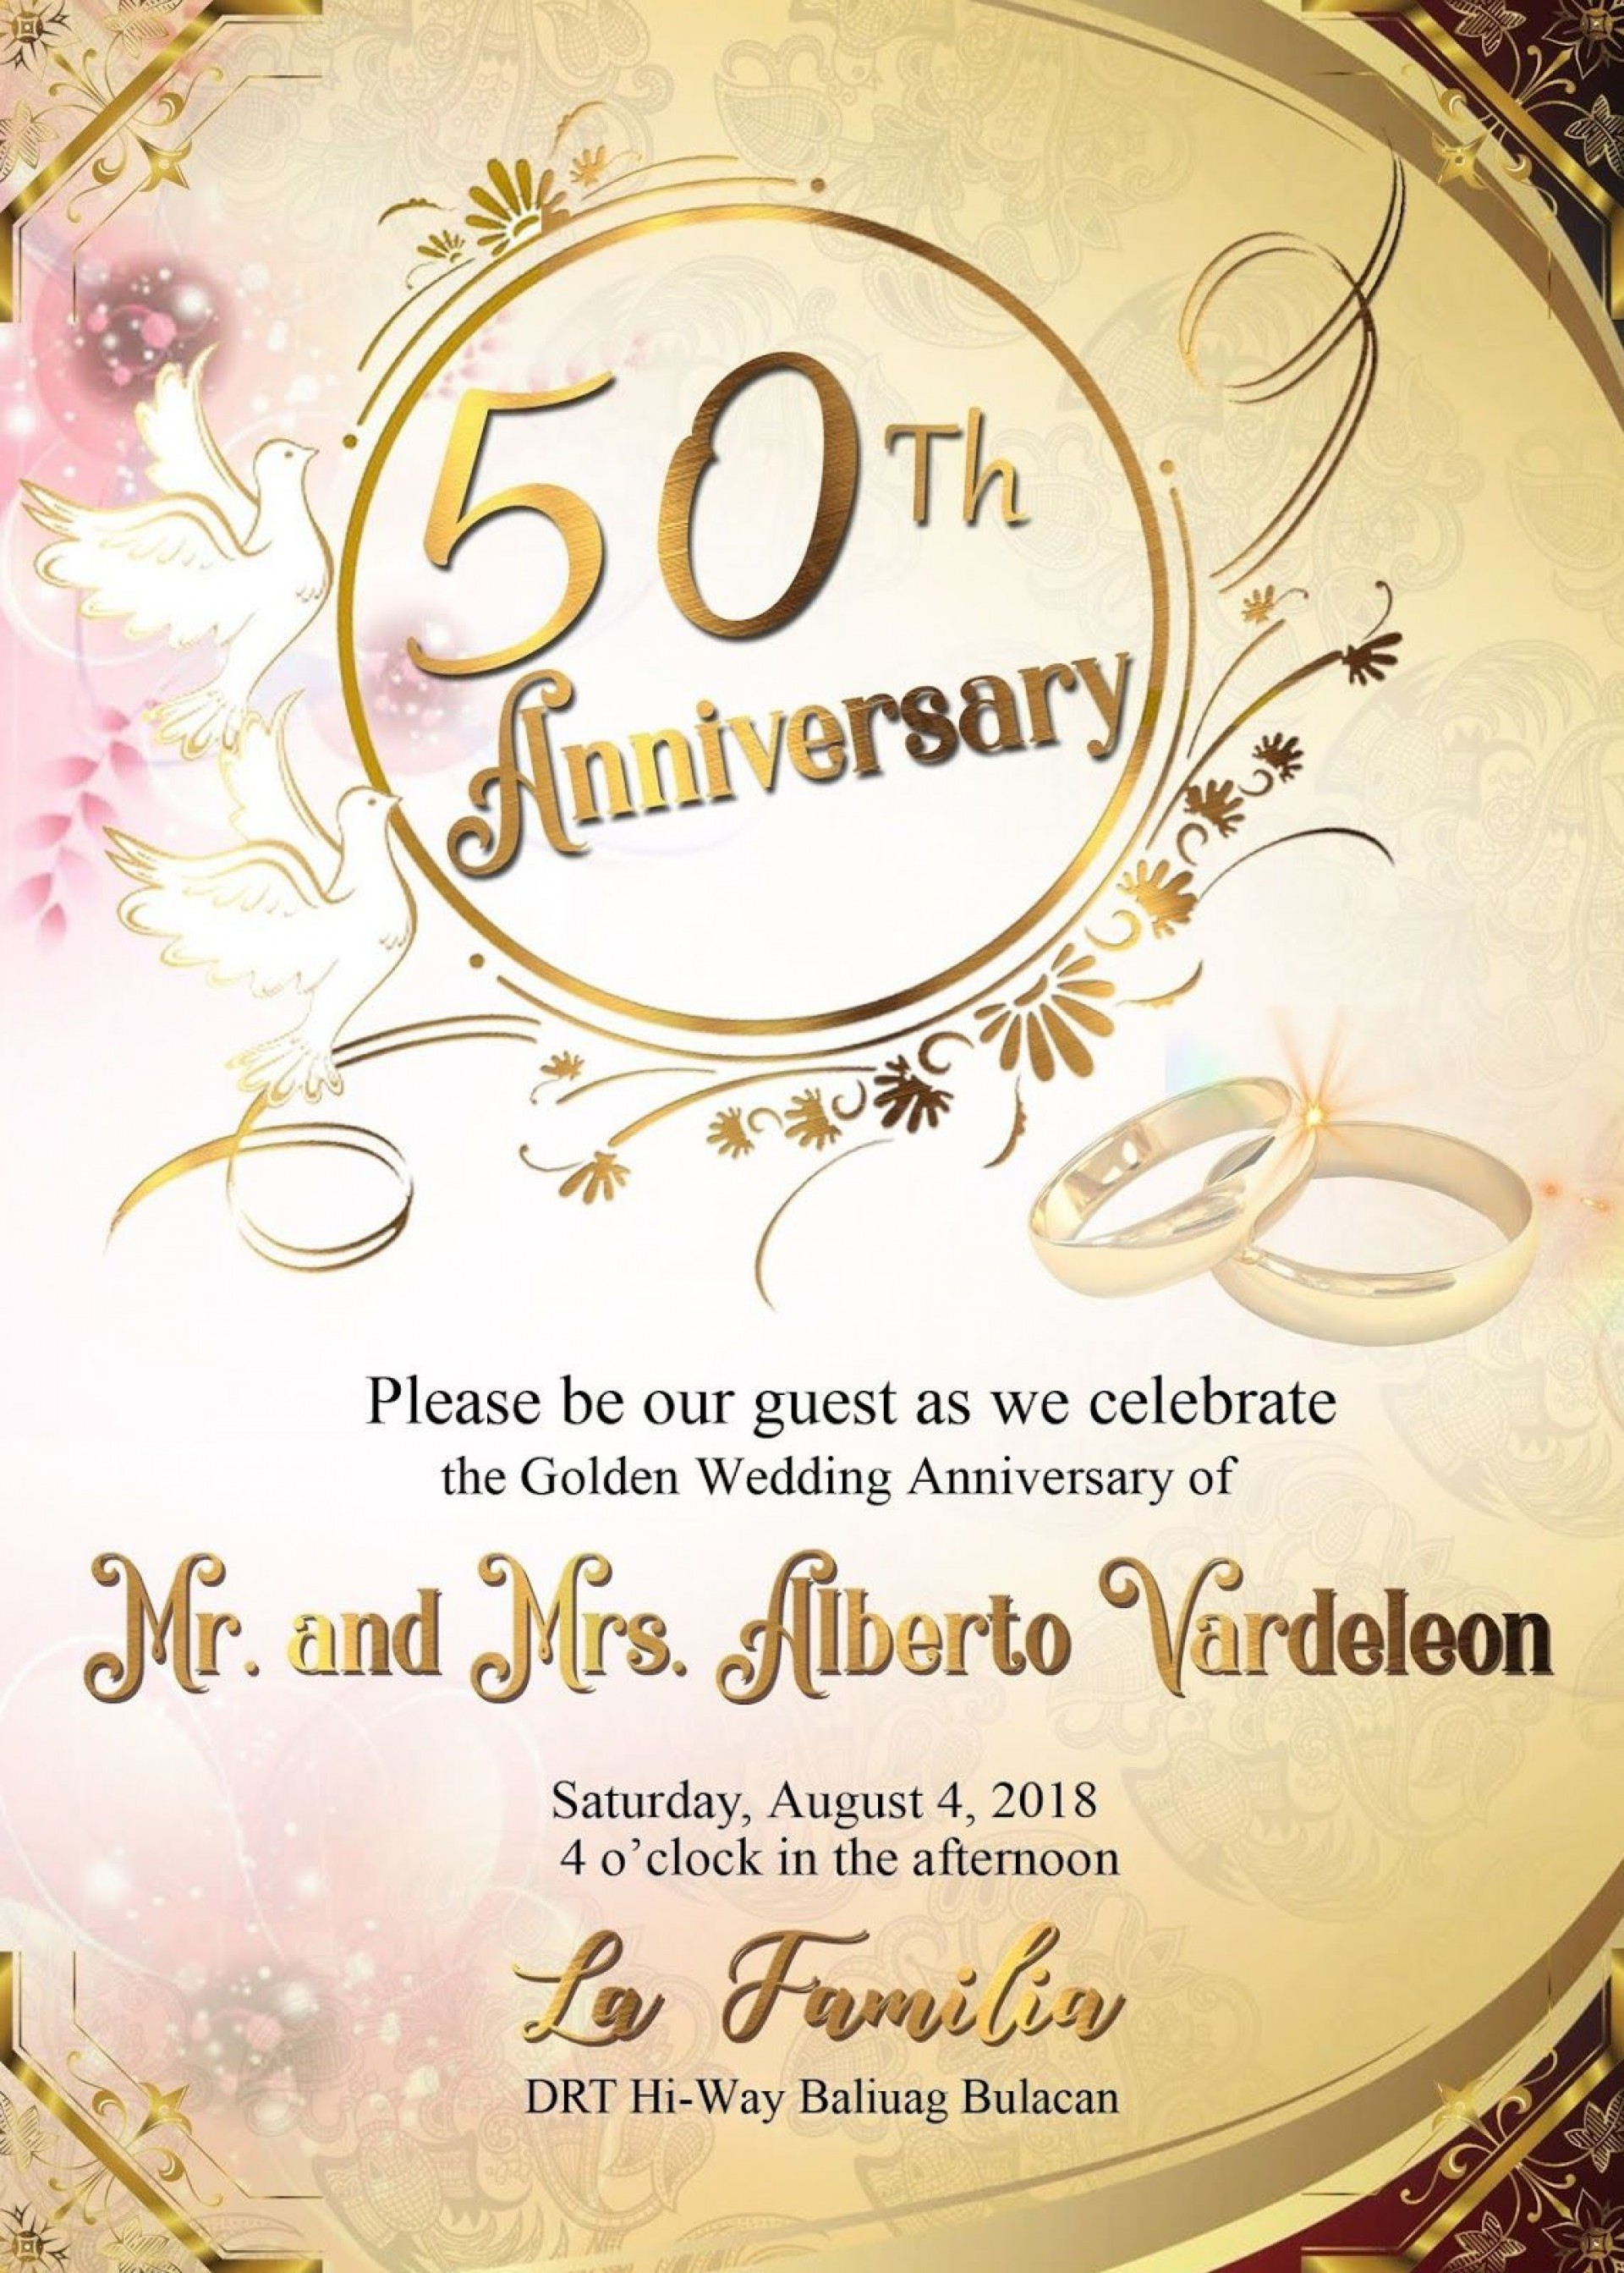 010 Stunning 50th Anniversary Party Invitation Template Example  Templates Golden Wedding Uk Microsoft Word Free1920